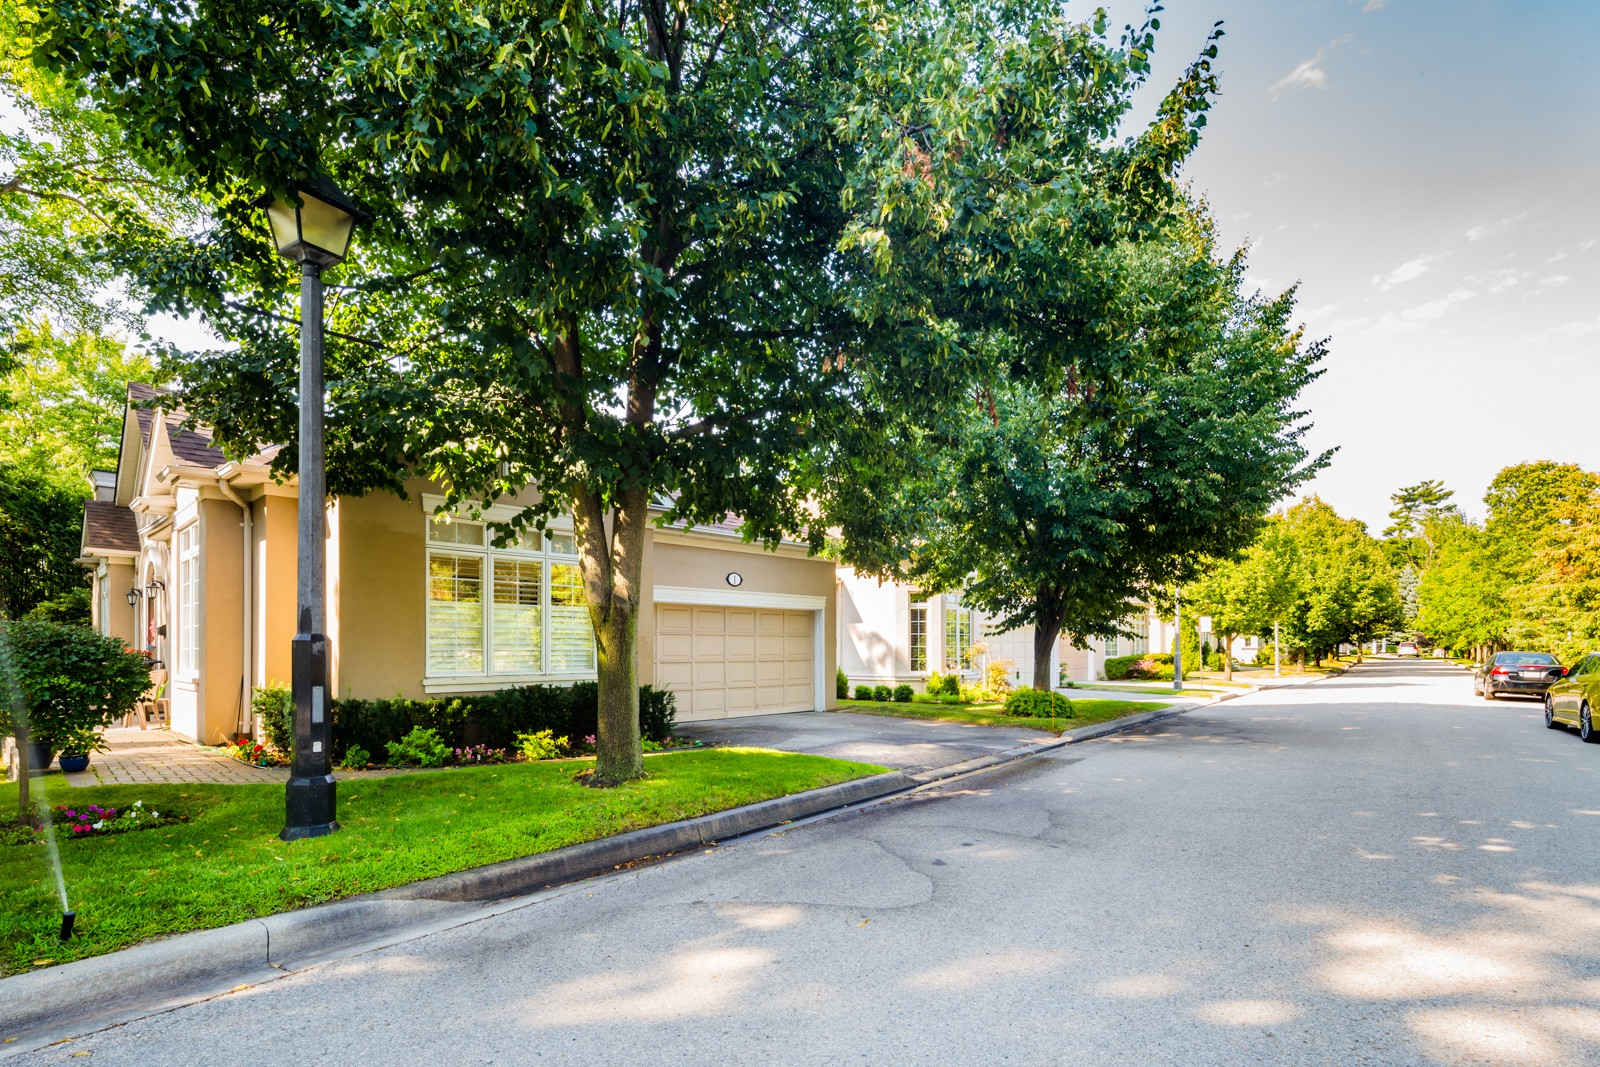 1205 Clarkson Road North Townhouses at 1205 Clarkson Rd N, Mississauga 1